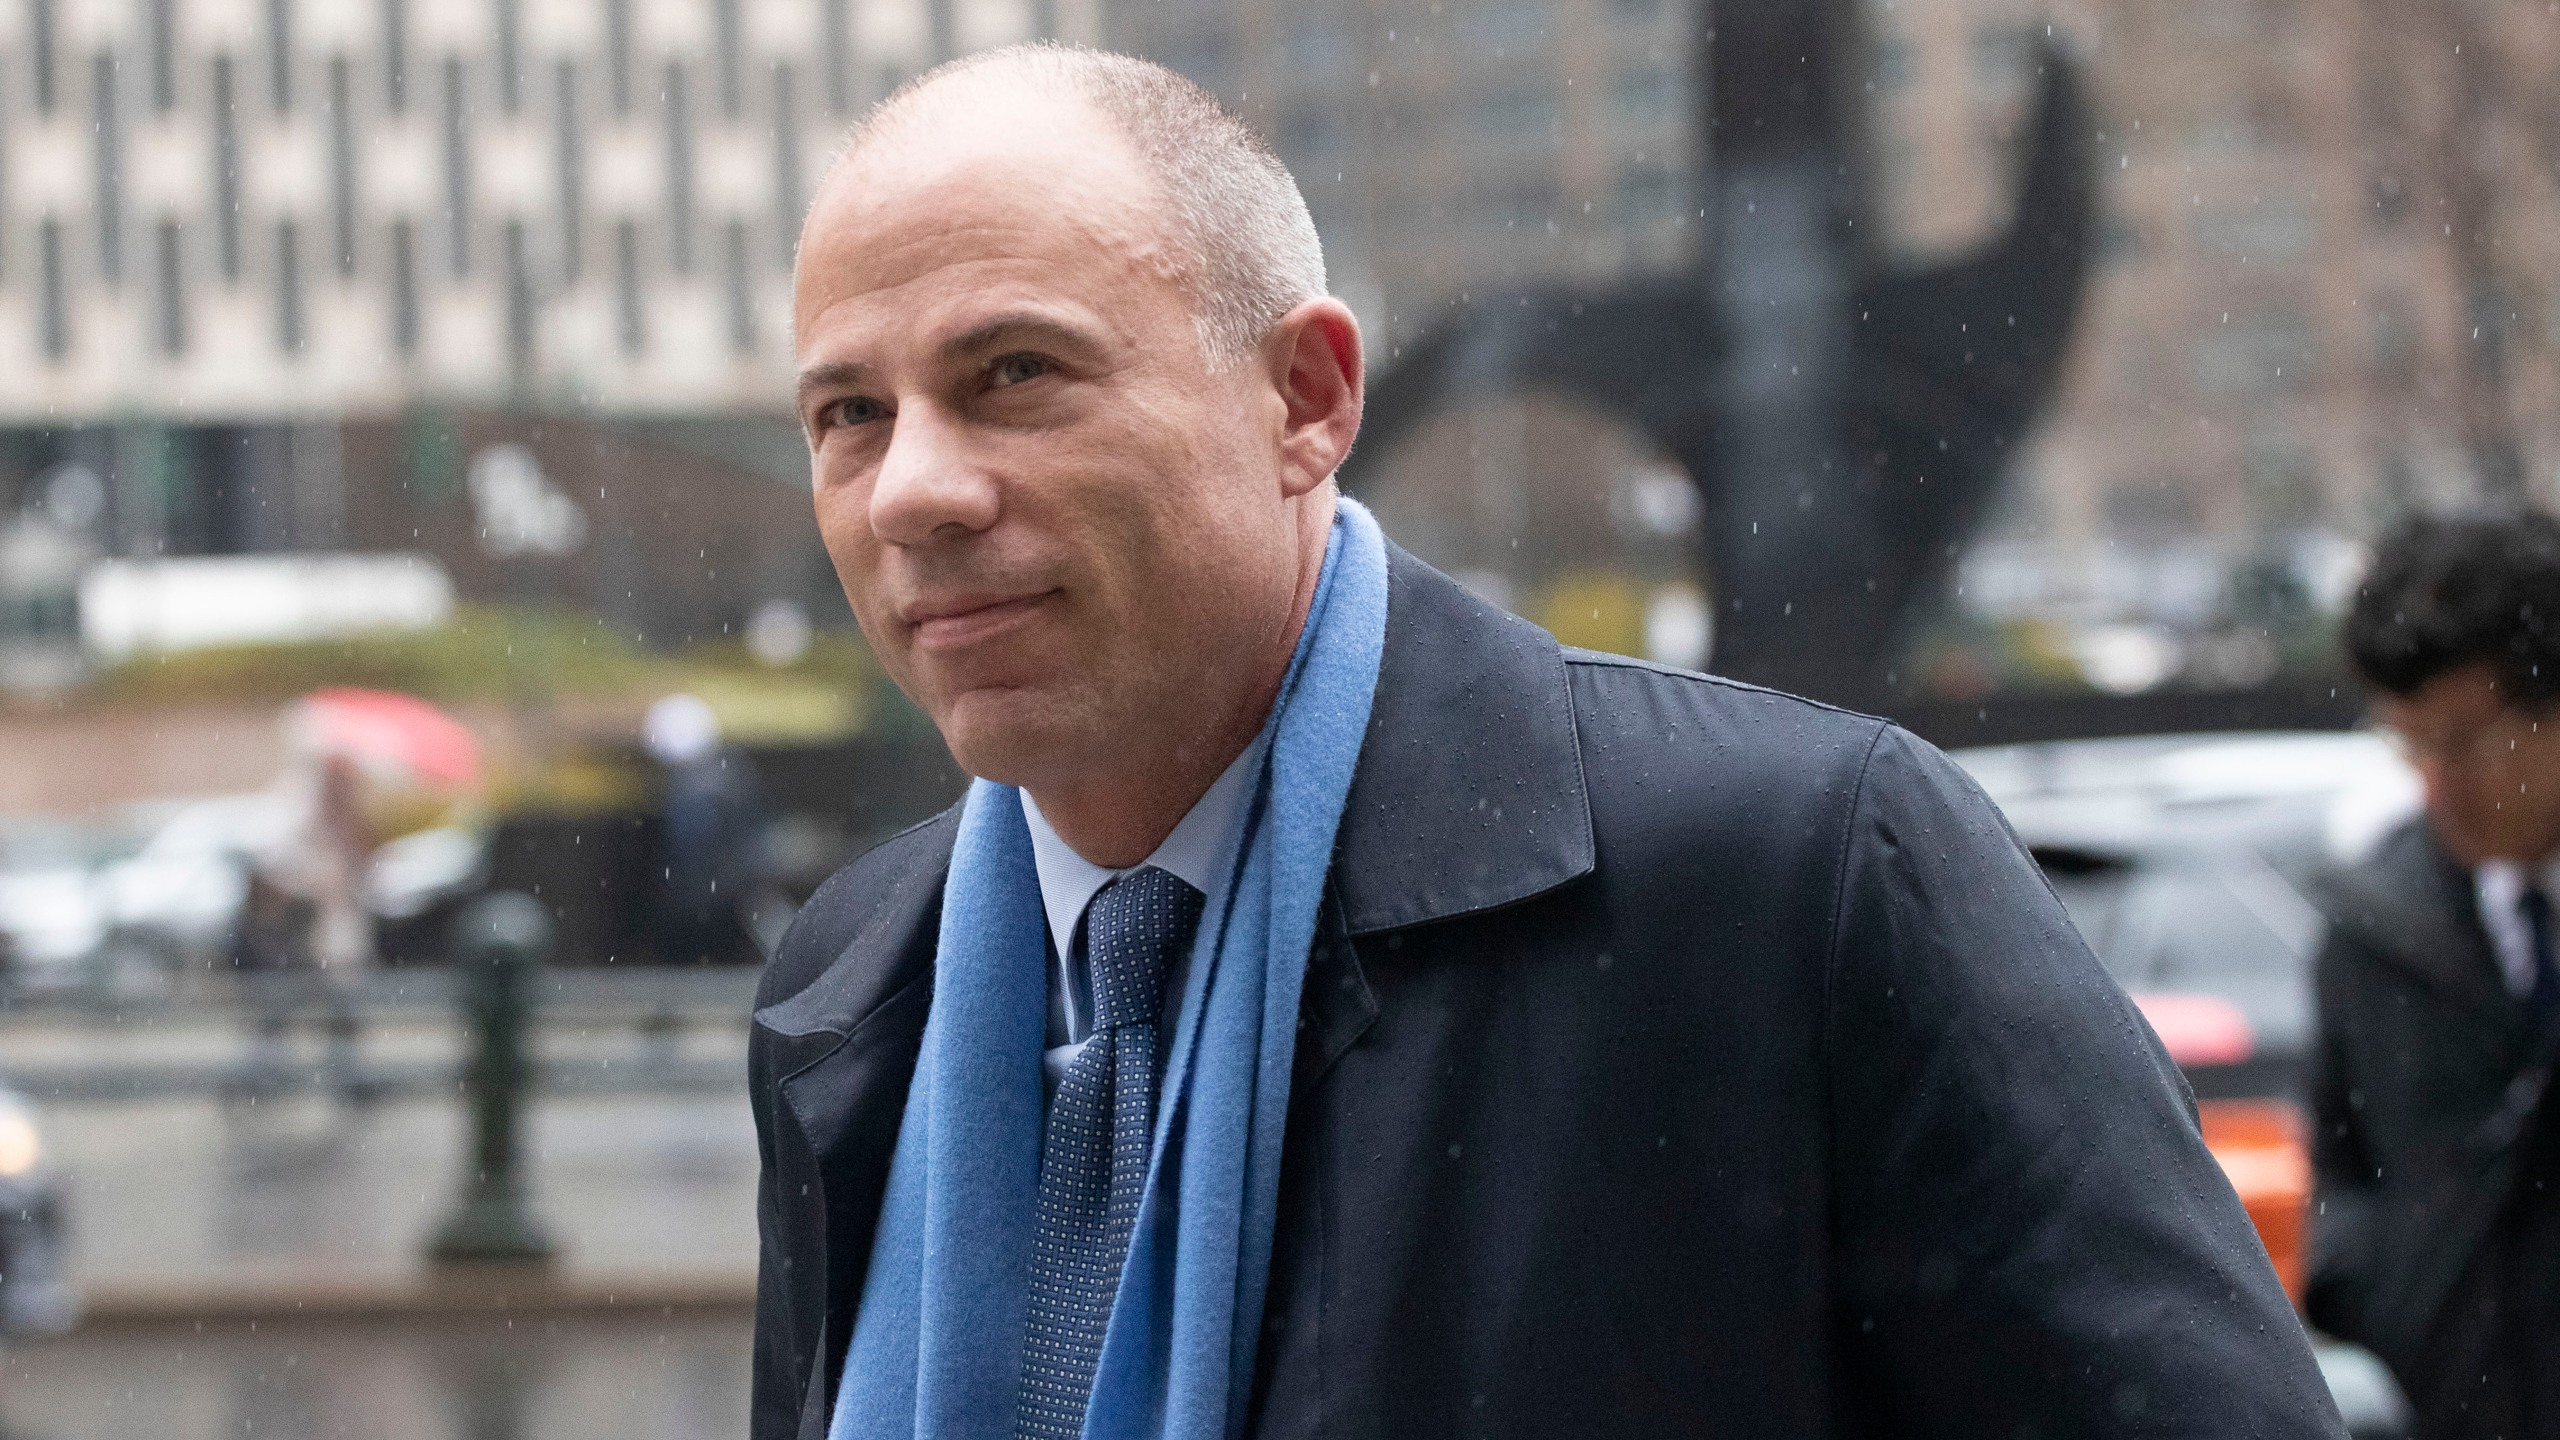 In this Dec. 17, 2019, file photo, attorney Michael Avenatti arrives at federal court in New York.(AP Photo/Mark Lennihan, File)